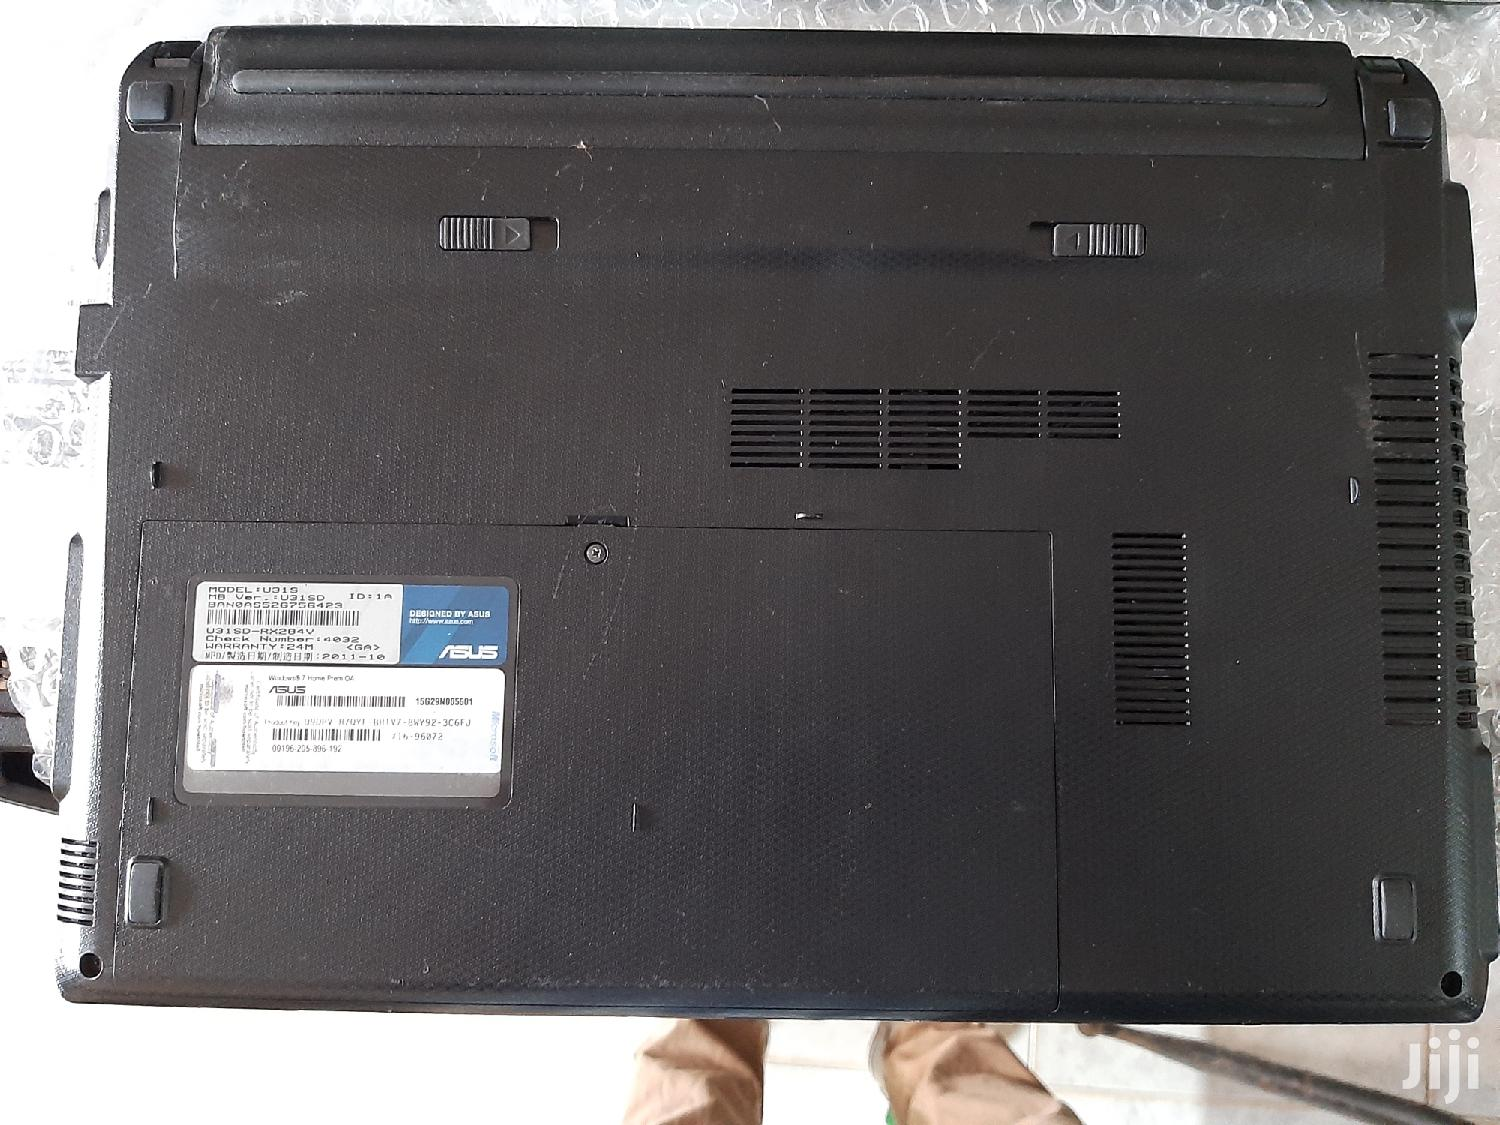 Laptop Asus U31SD 4GB Intel Core i5 HDD 500GB | Laptops & Computers for sale in Accra Metropolitan, Greater Accra, Ghana